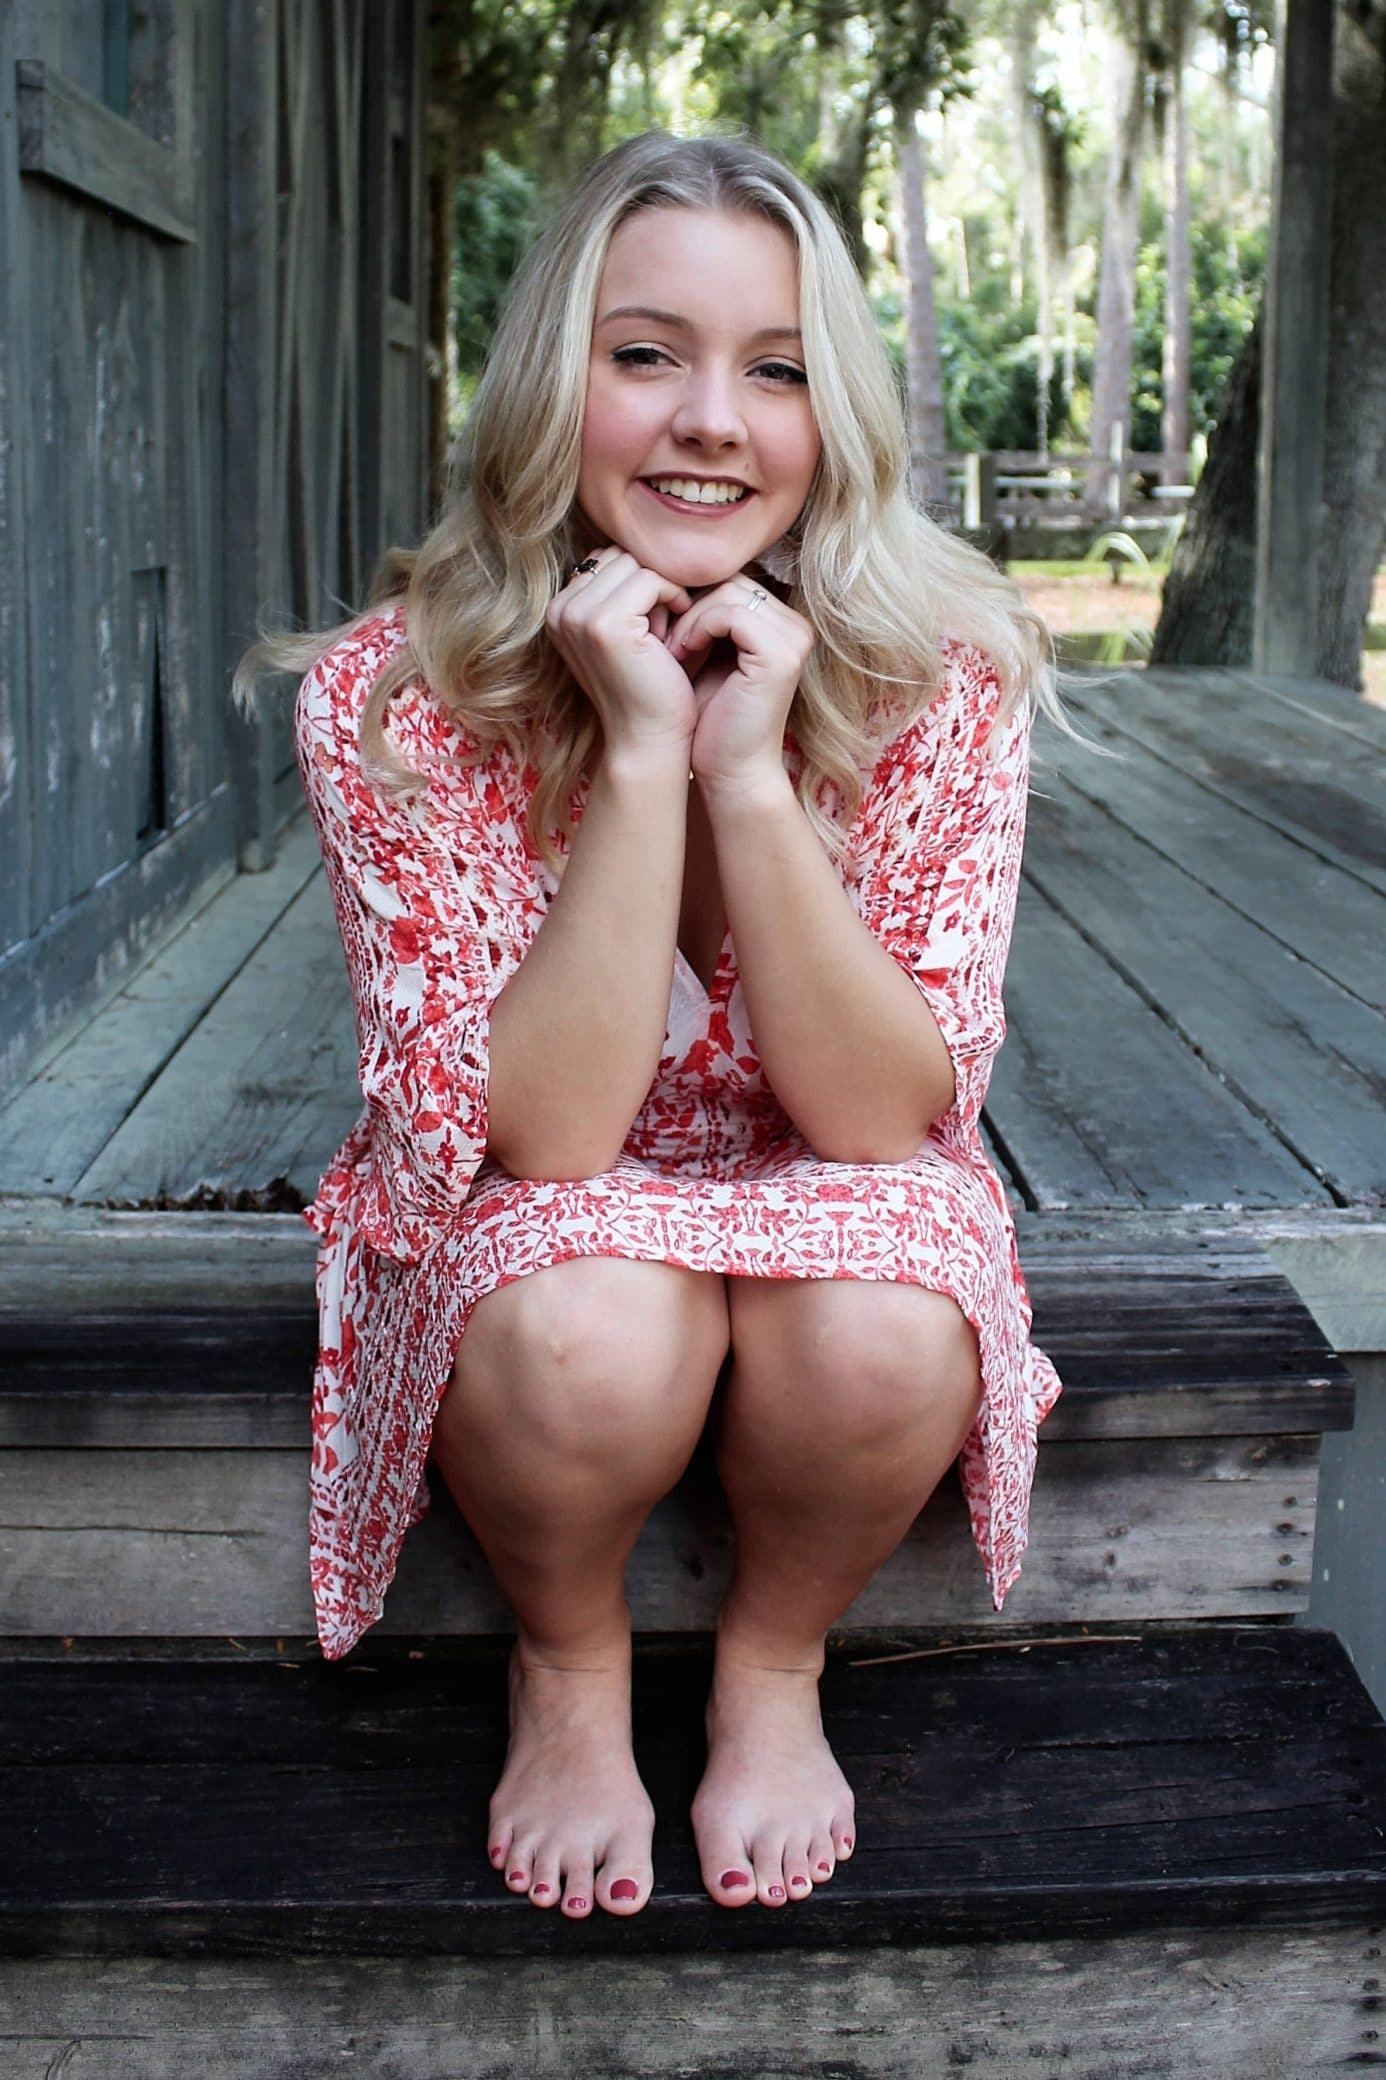 Beautiful blonde woman smiling sitting wearing a summer dress showing her bare legs and feet